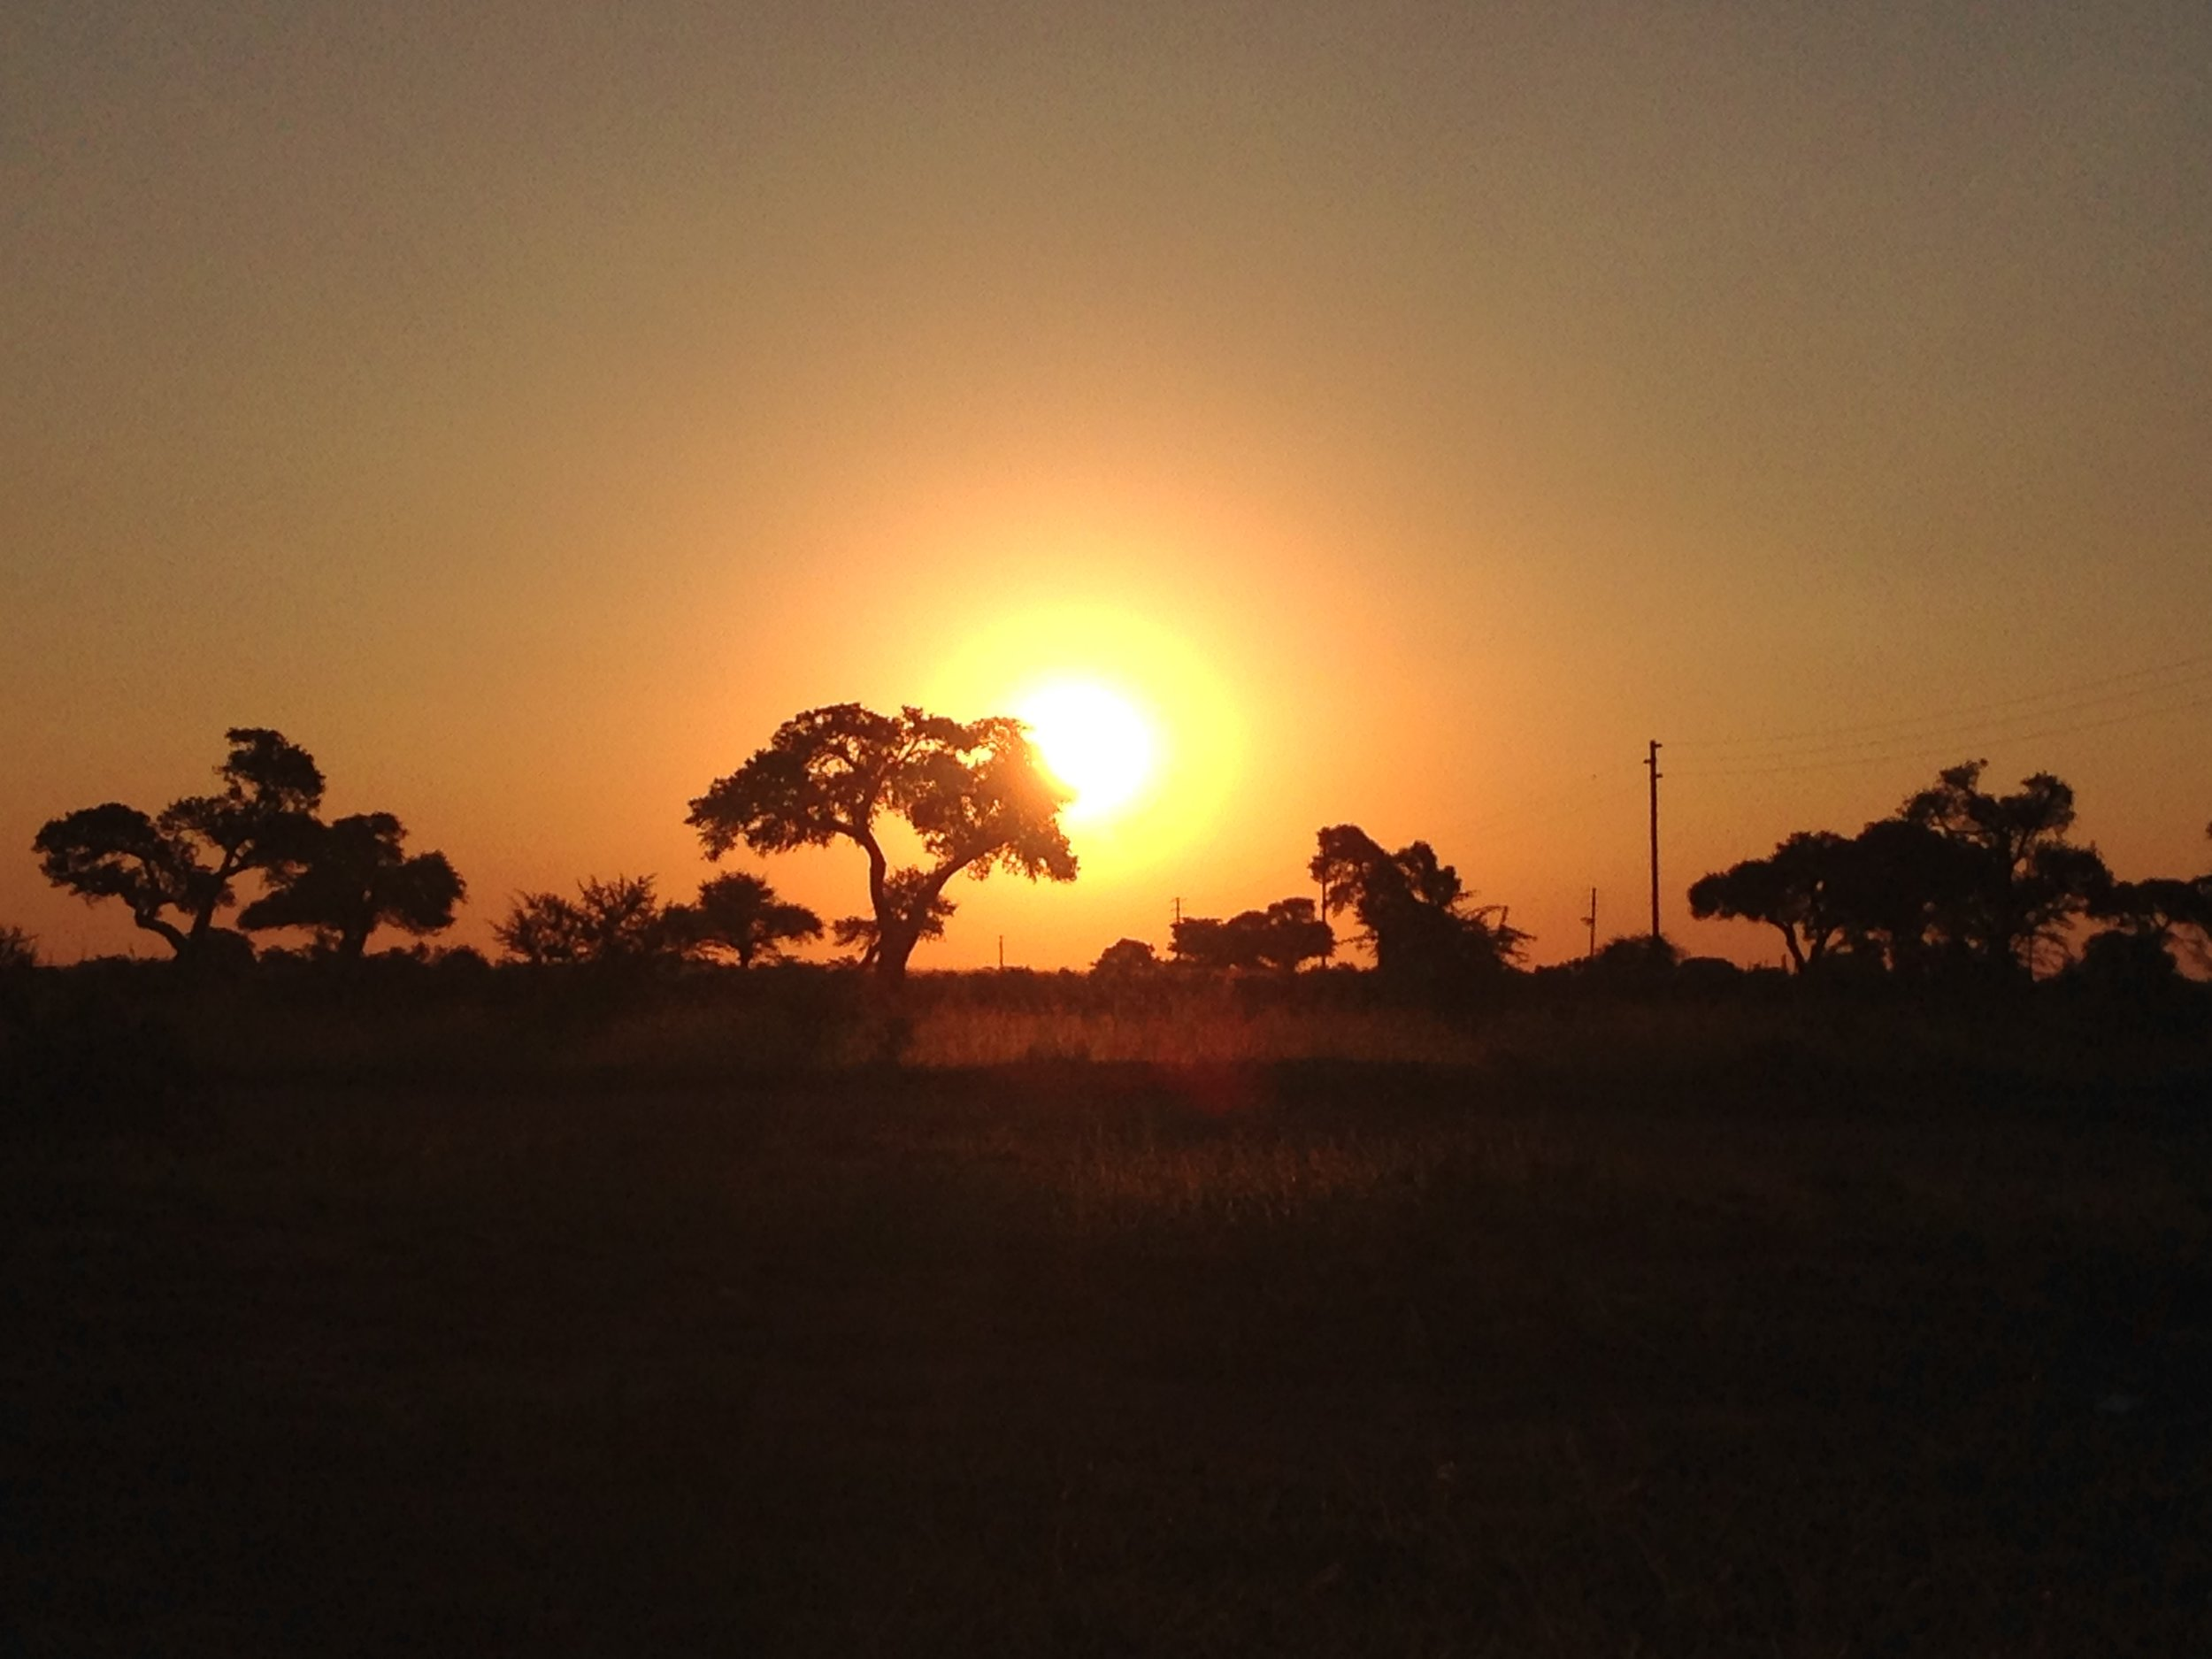 Day's End - Mpumalanga Province, South Africa